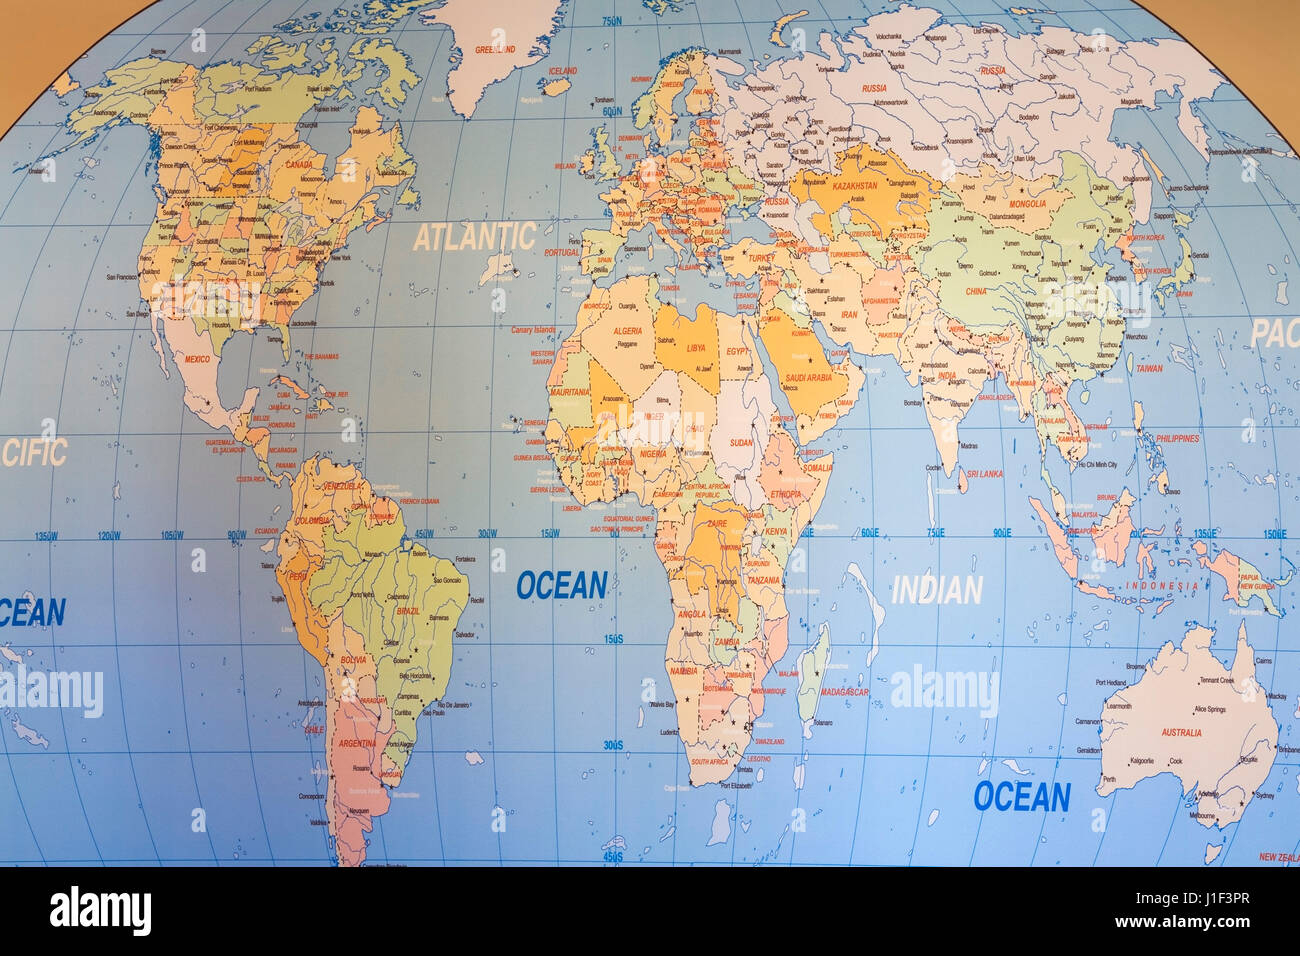 Canada and pacific ocean on globe stock photos canada and pacific world map wall mural stock image gumiabroncs Image collections